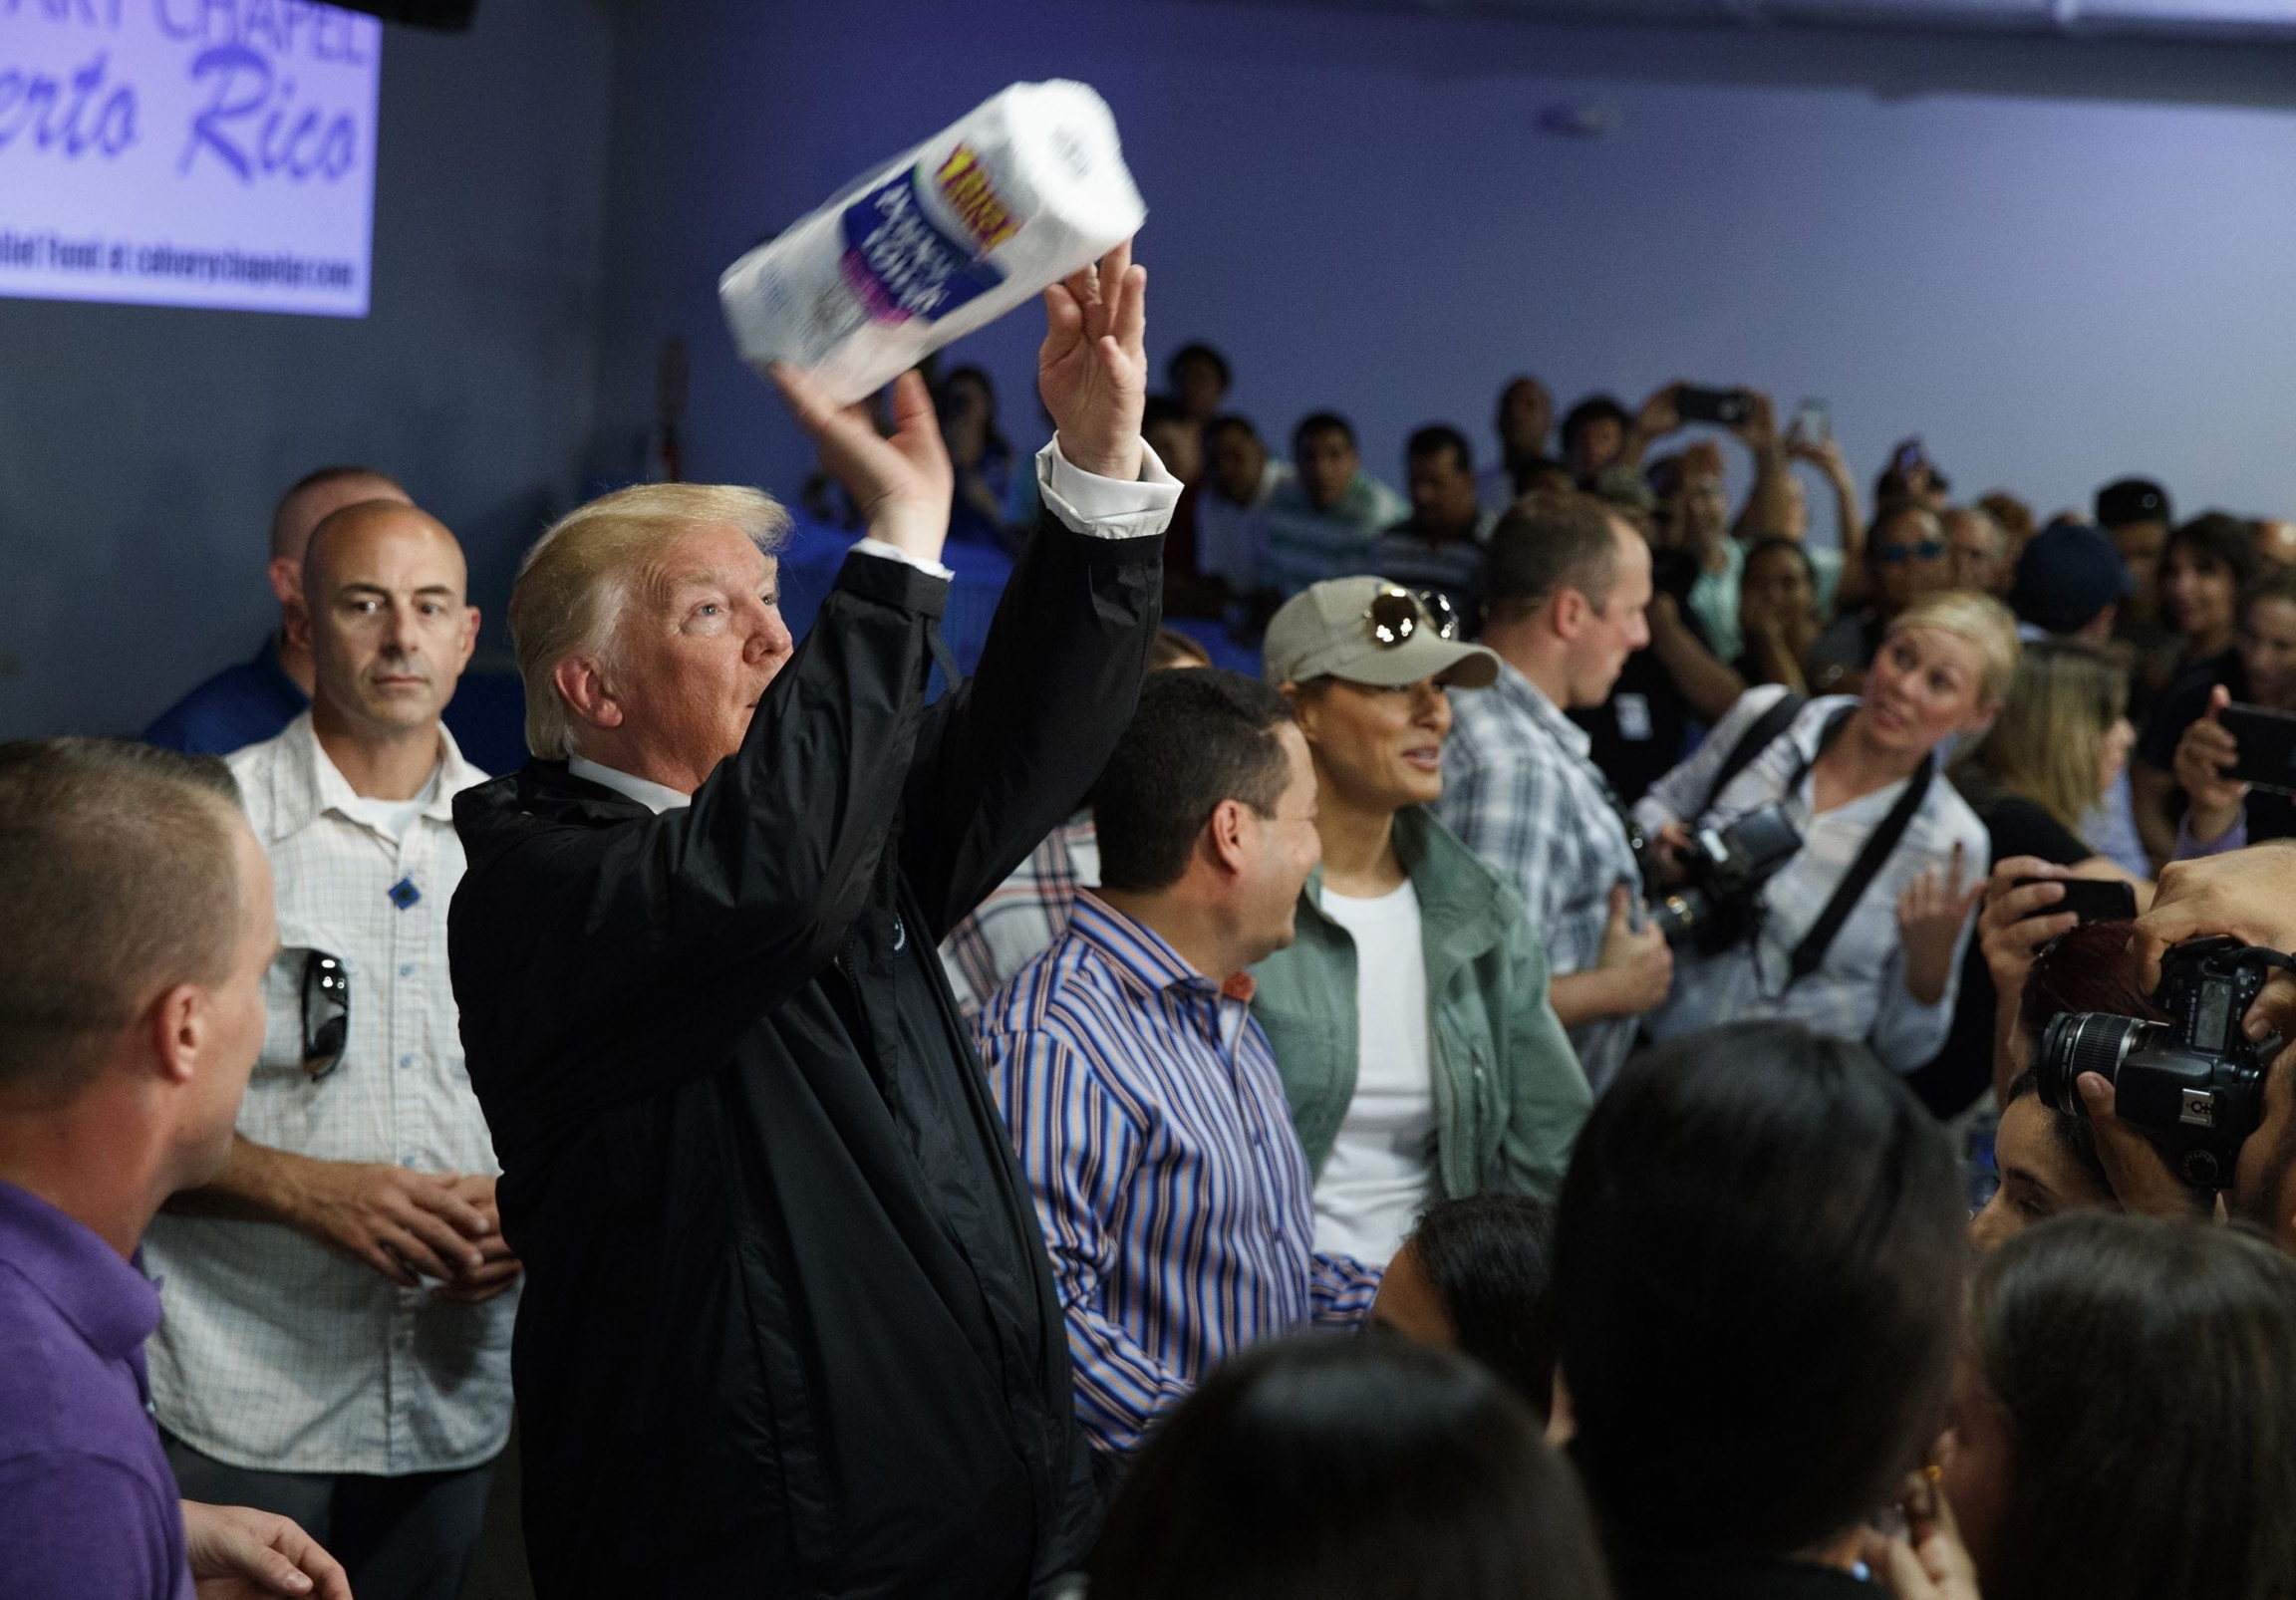 A man wearing a black suit throws a roll of paper towels to people in front of him to catch.